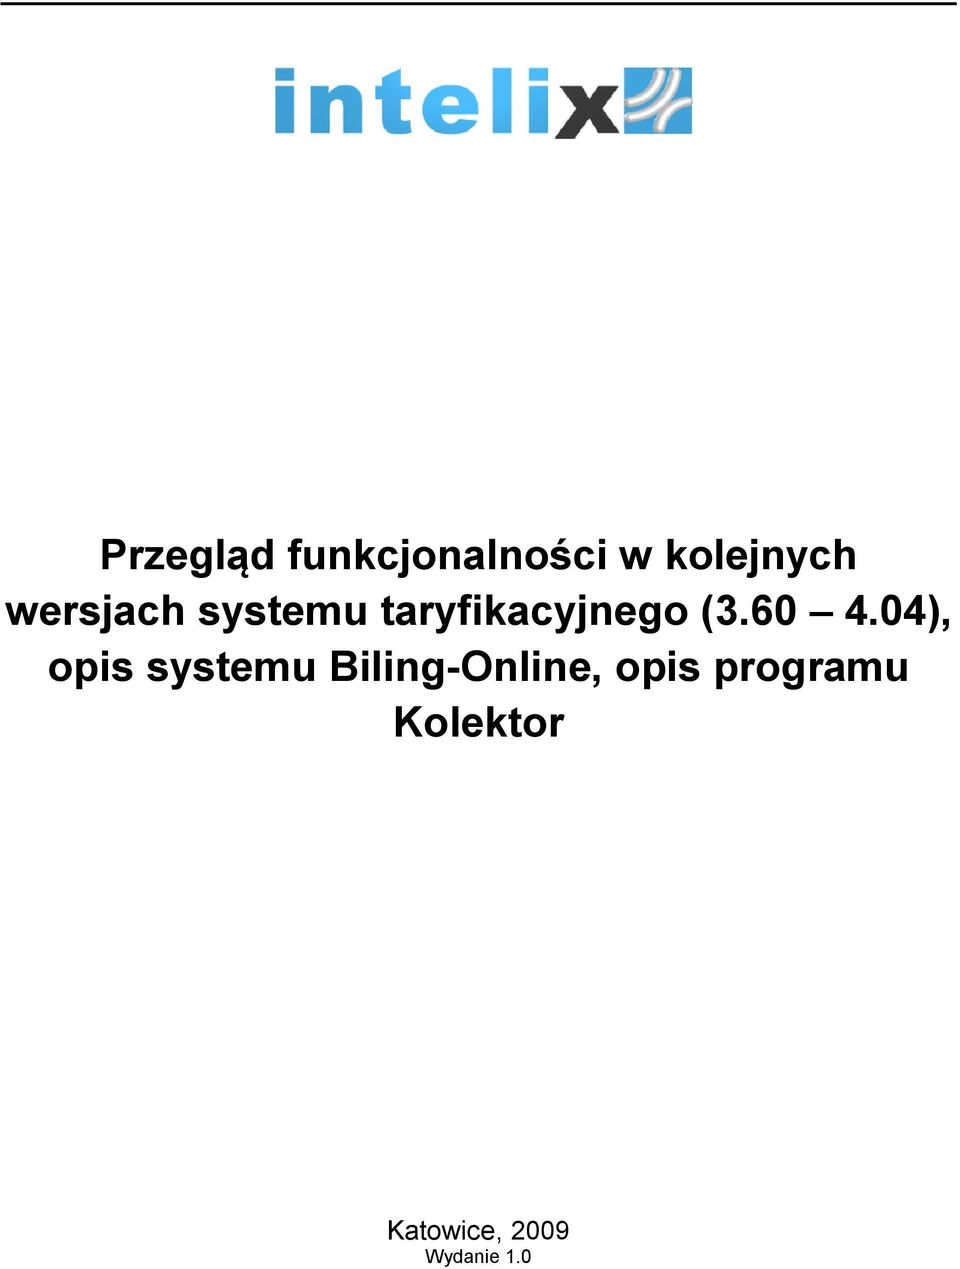 60 4.04), pis systemu Biling-Online,